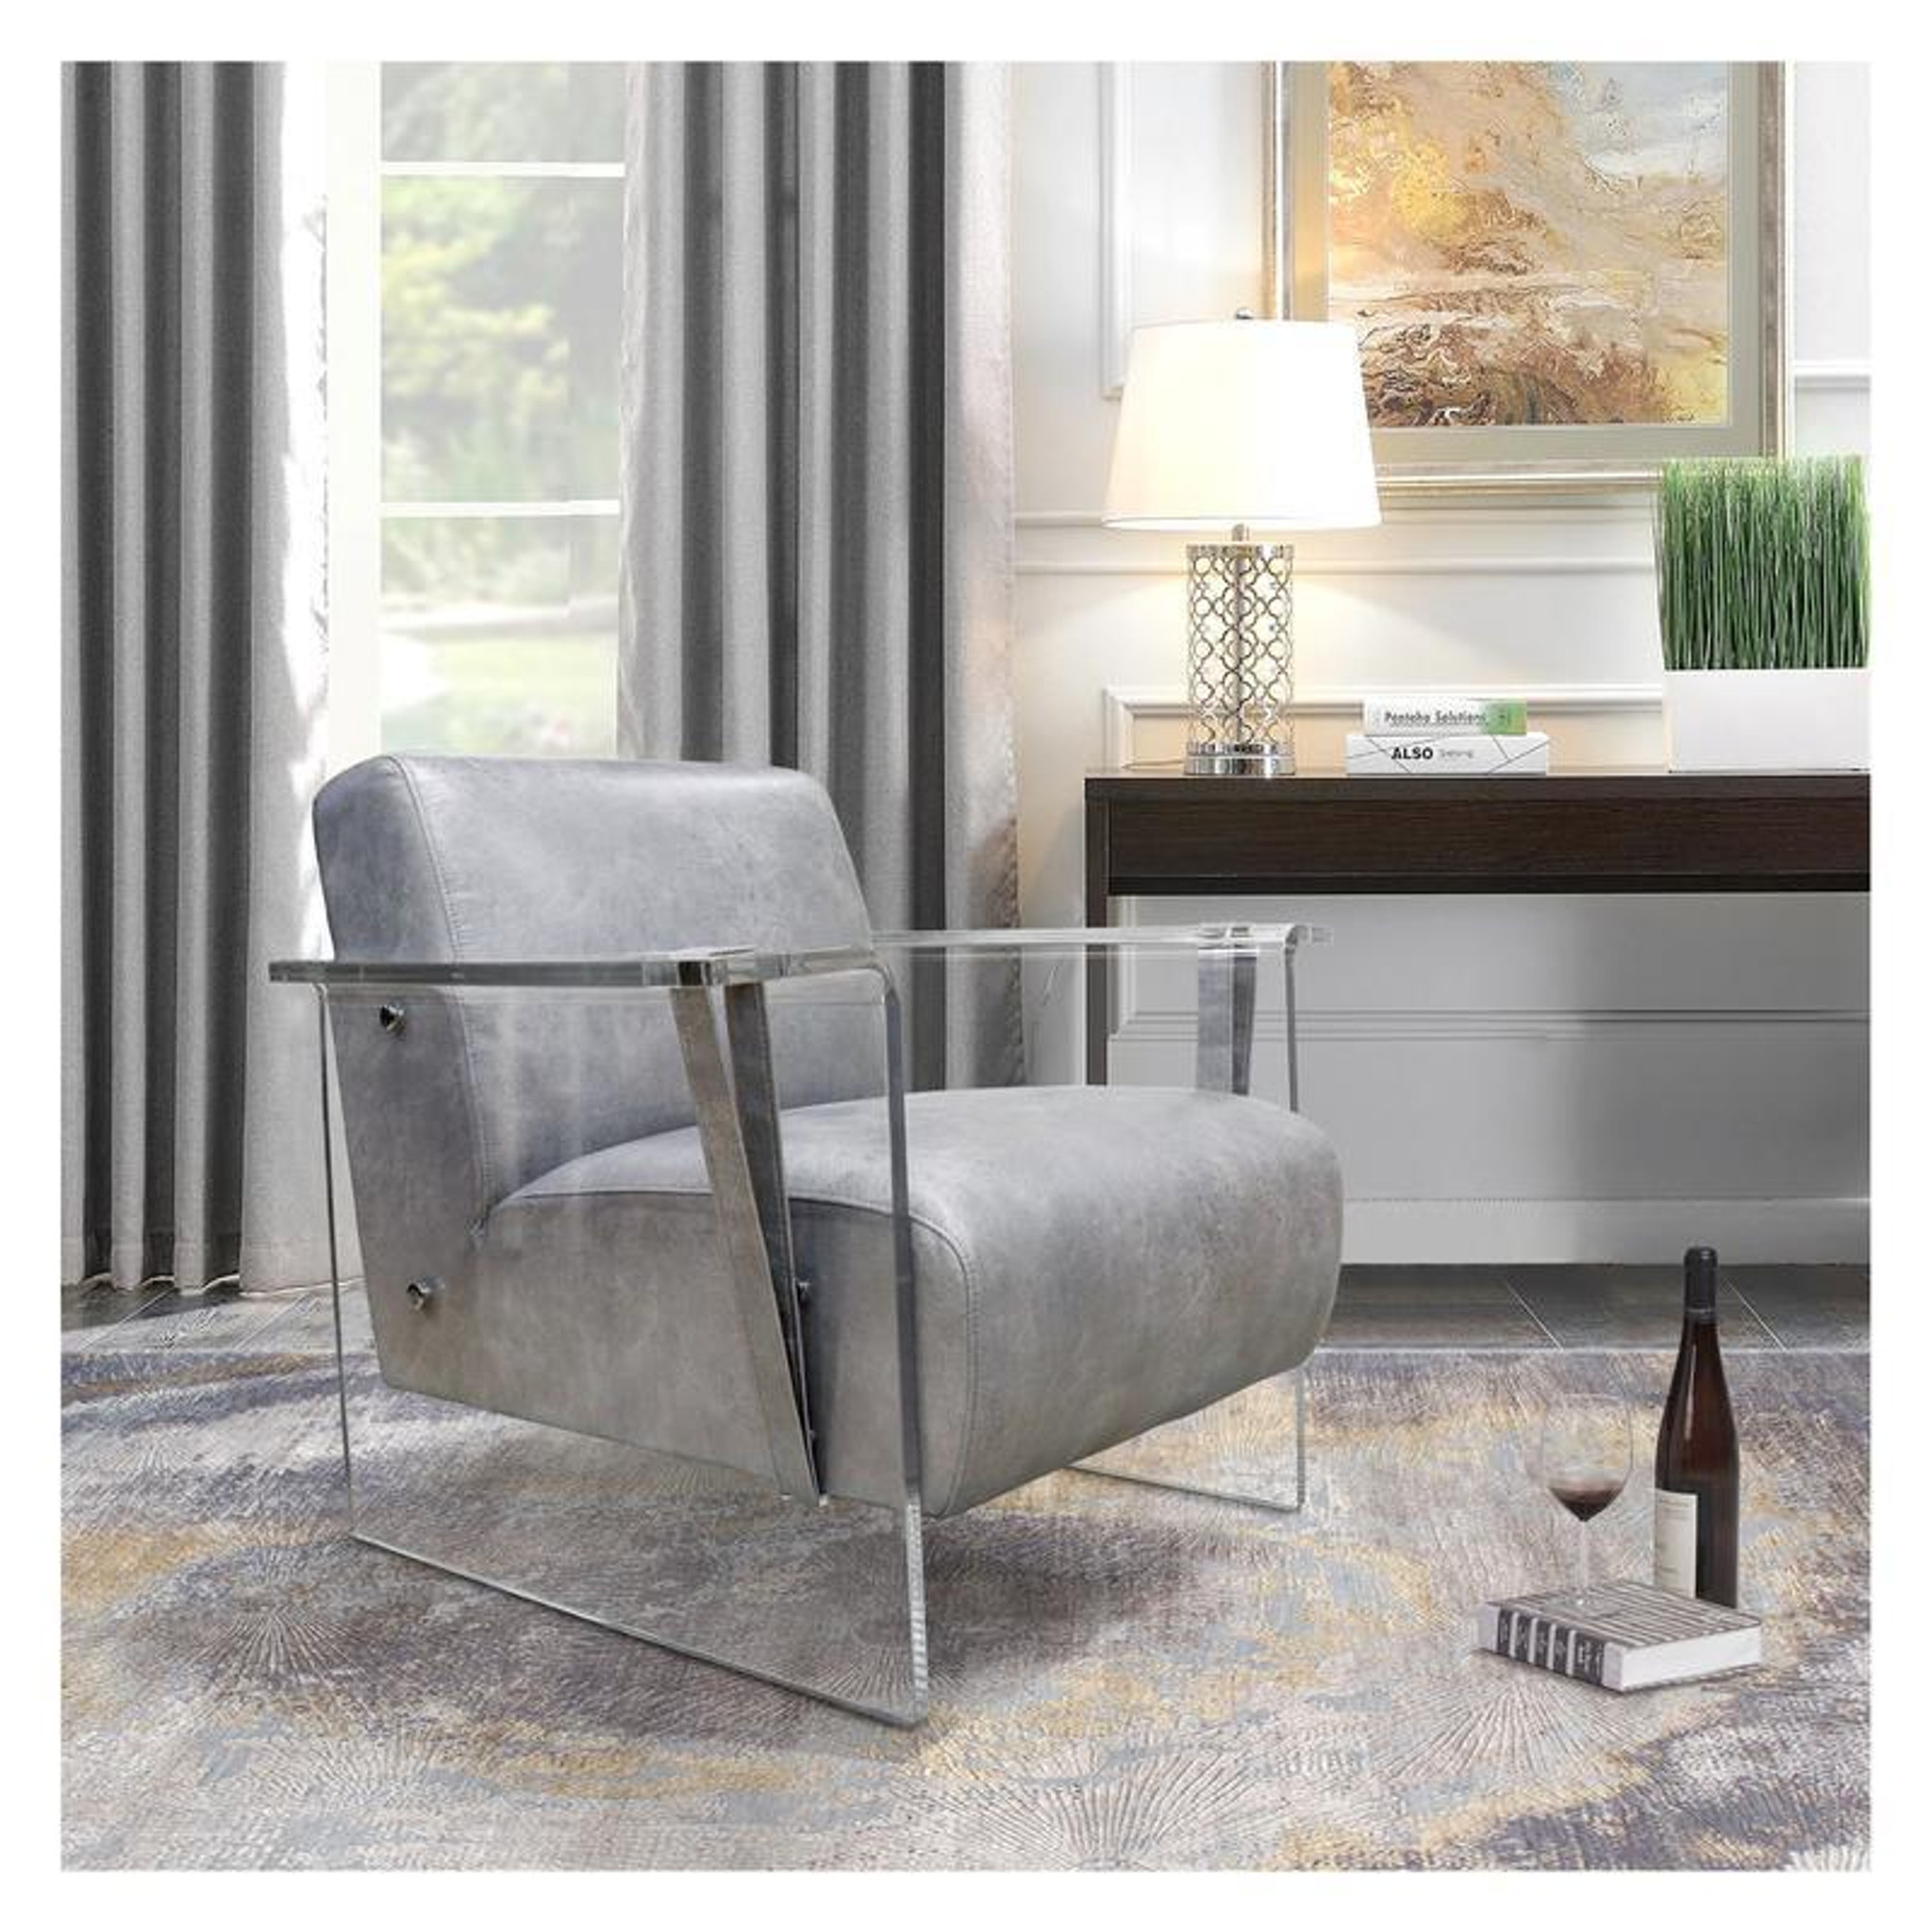 acrylic accent chair in grey for modern clear living room decor